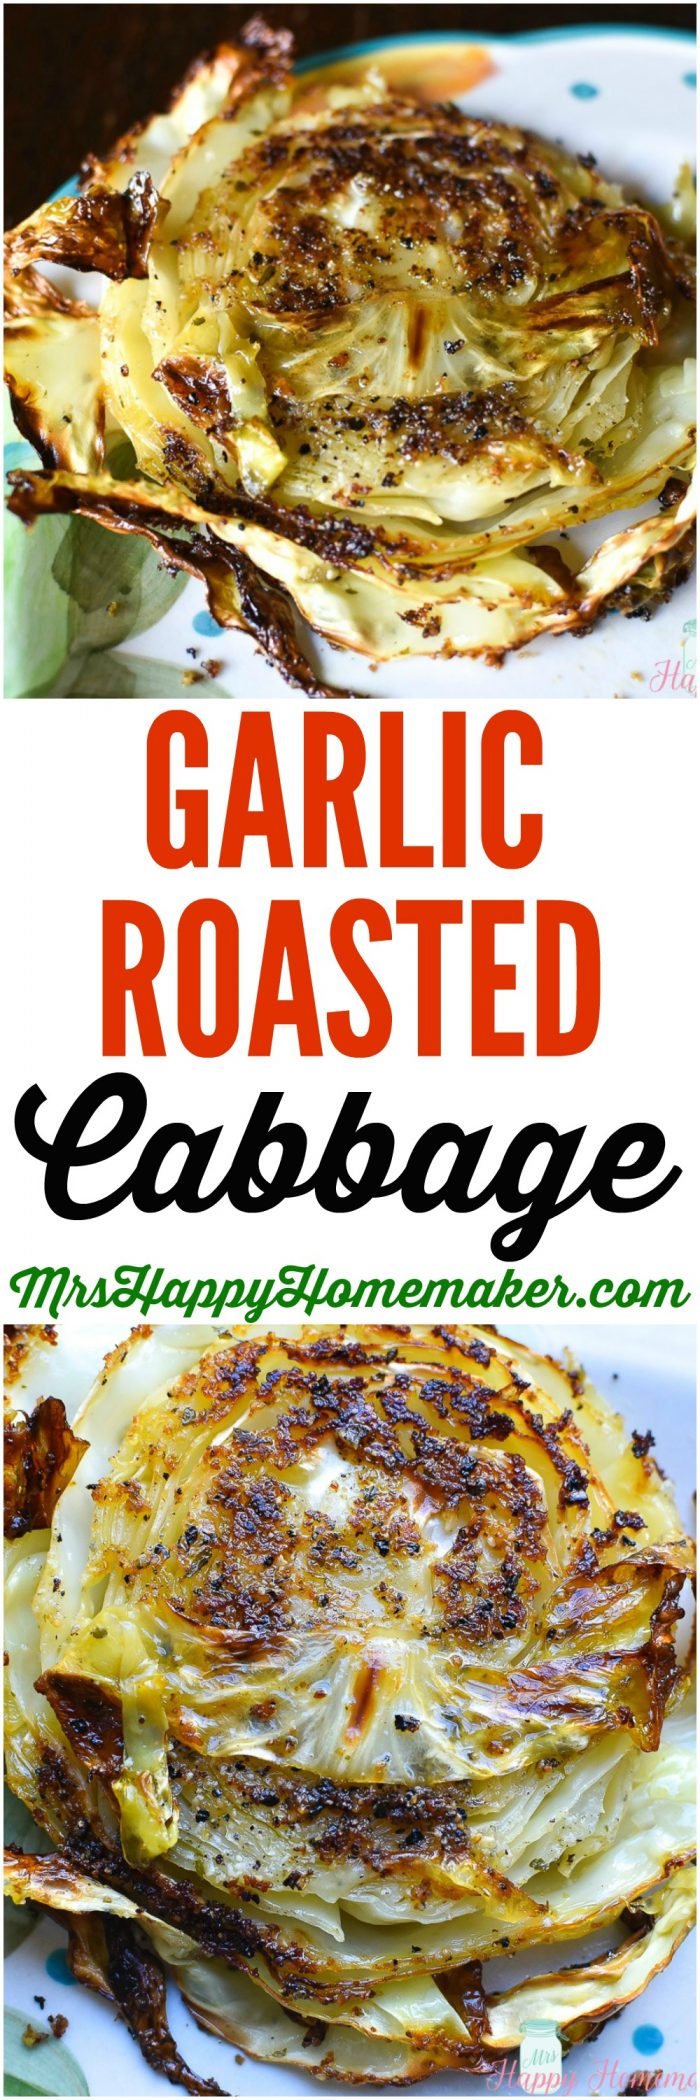 garlic roasted cabbage